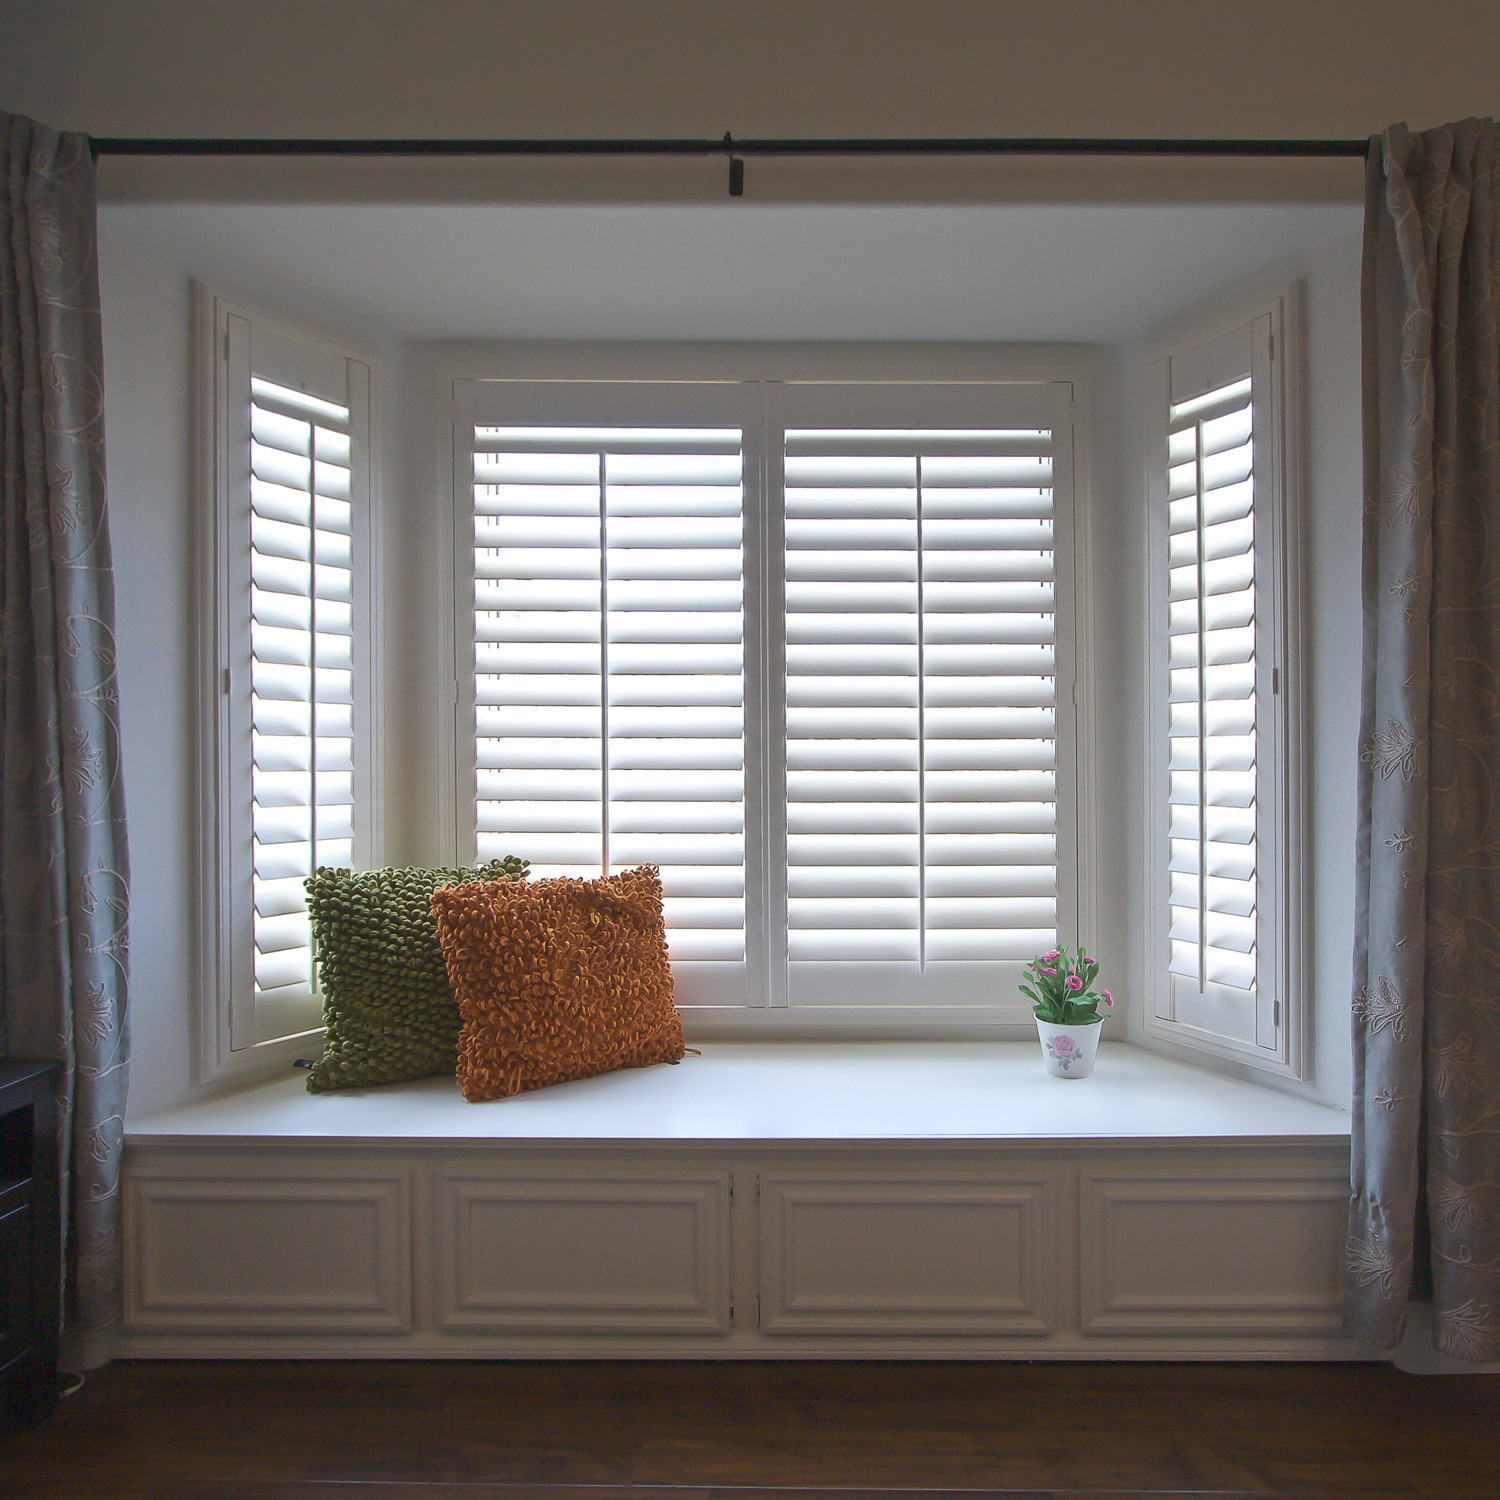 Home decor blinds 100 home decor blinds decorating - Home decorators collection blinds installation instructions ideas ...